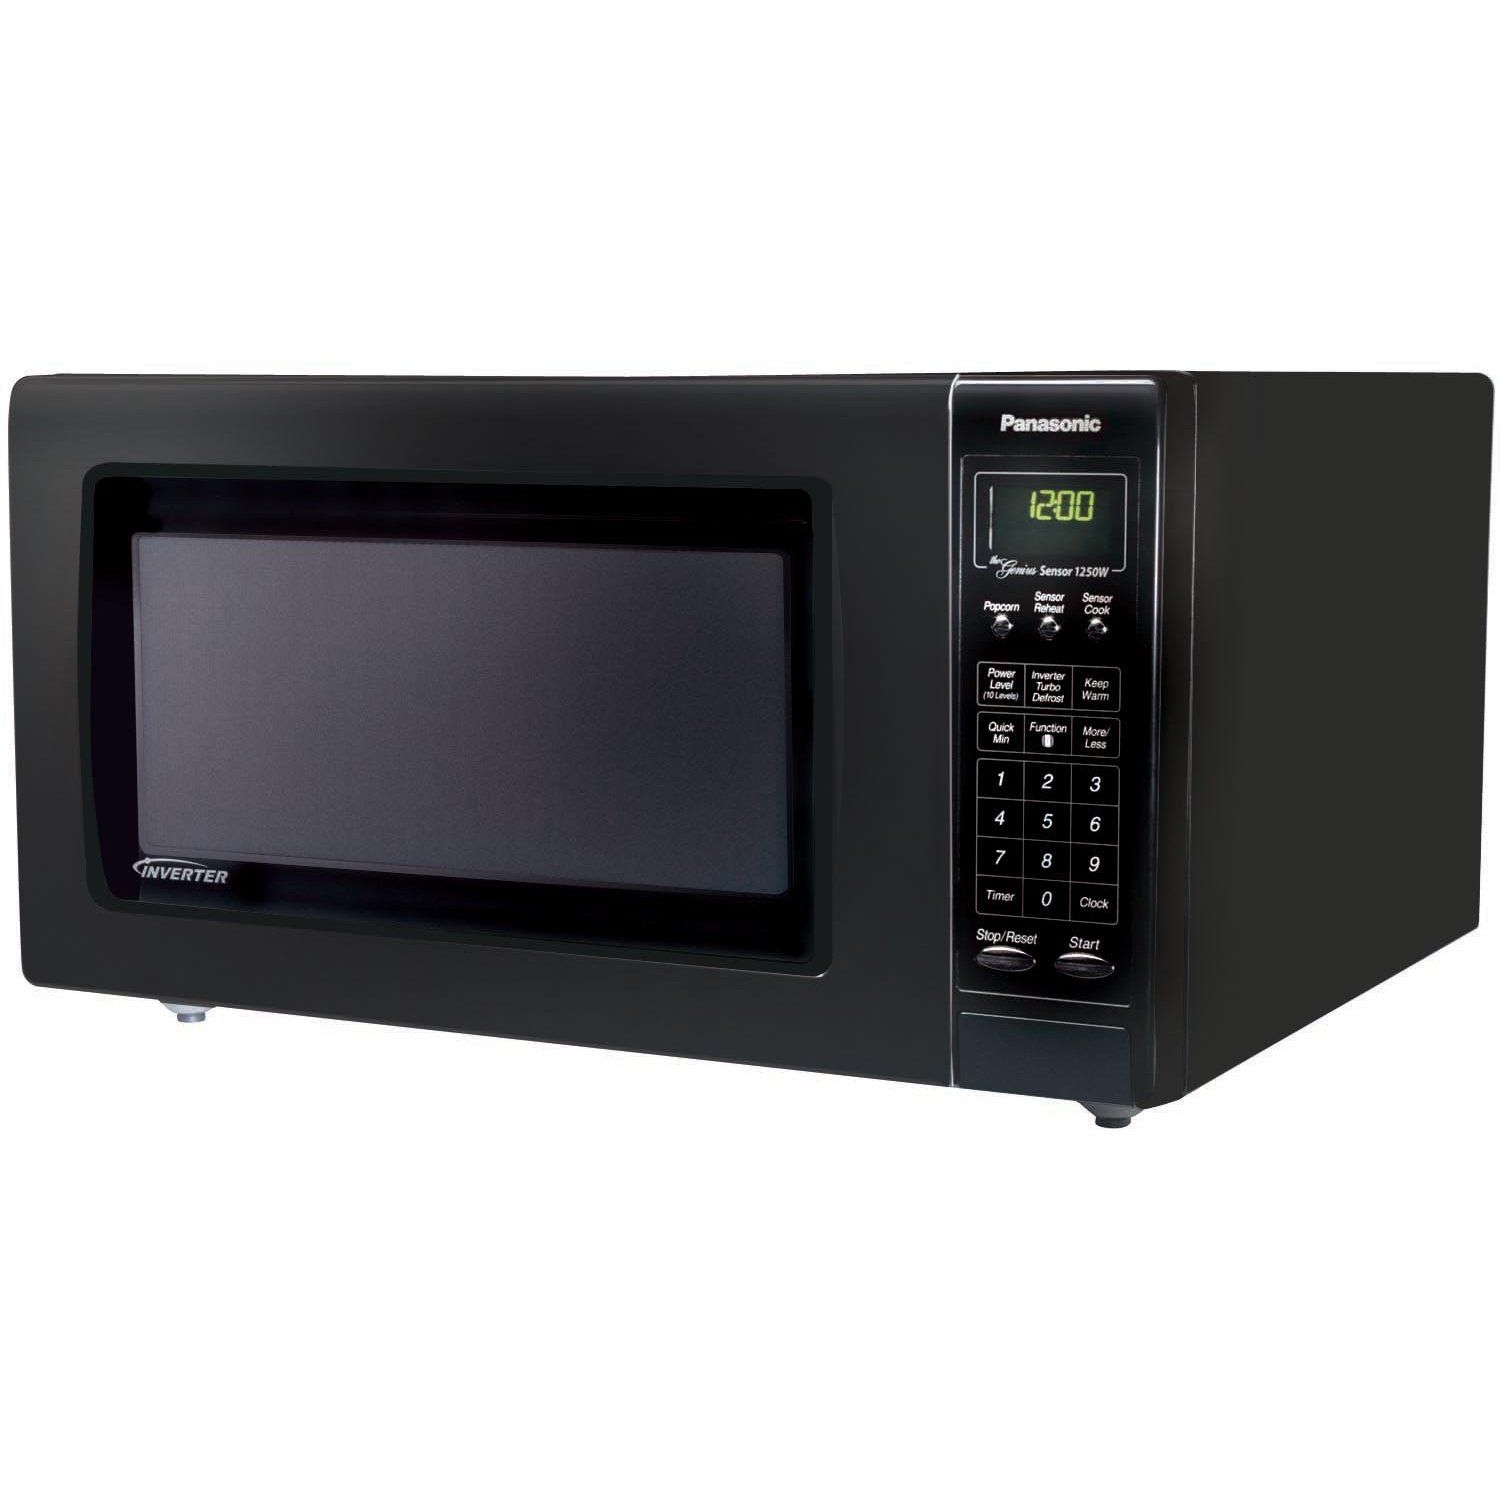 Wishlist For Our House Microwave Oven Microwave Kitchen